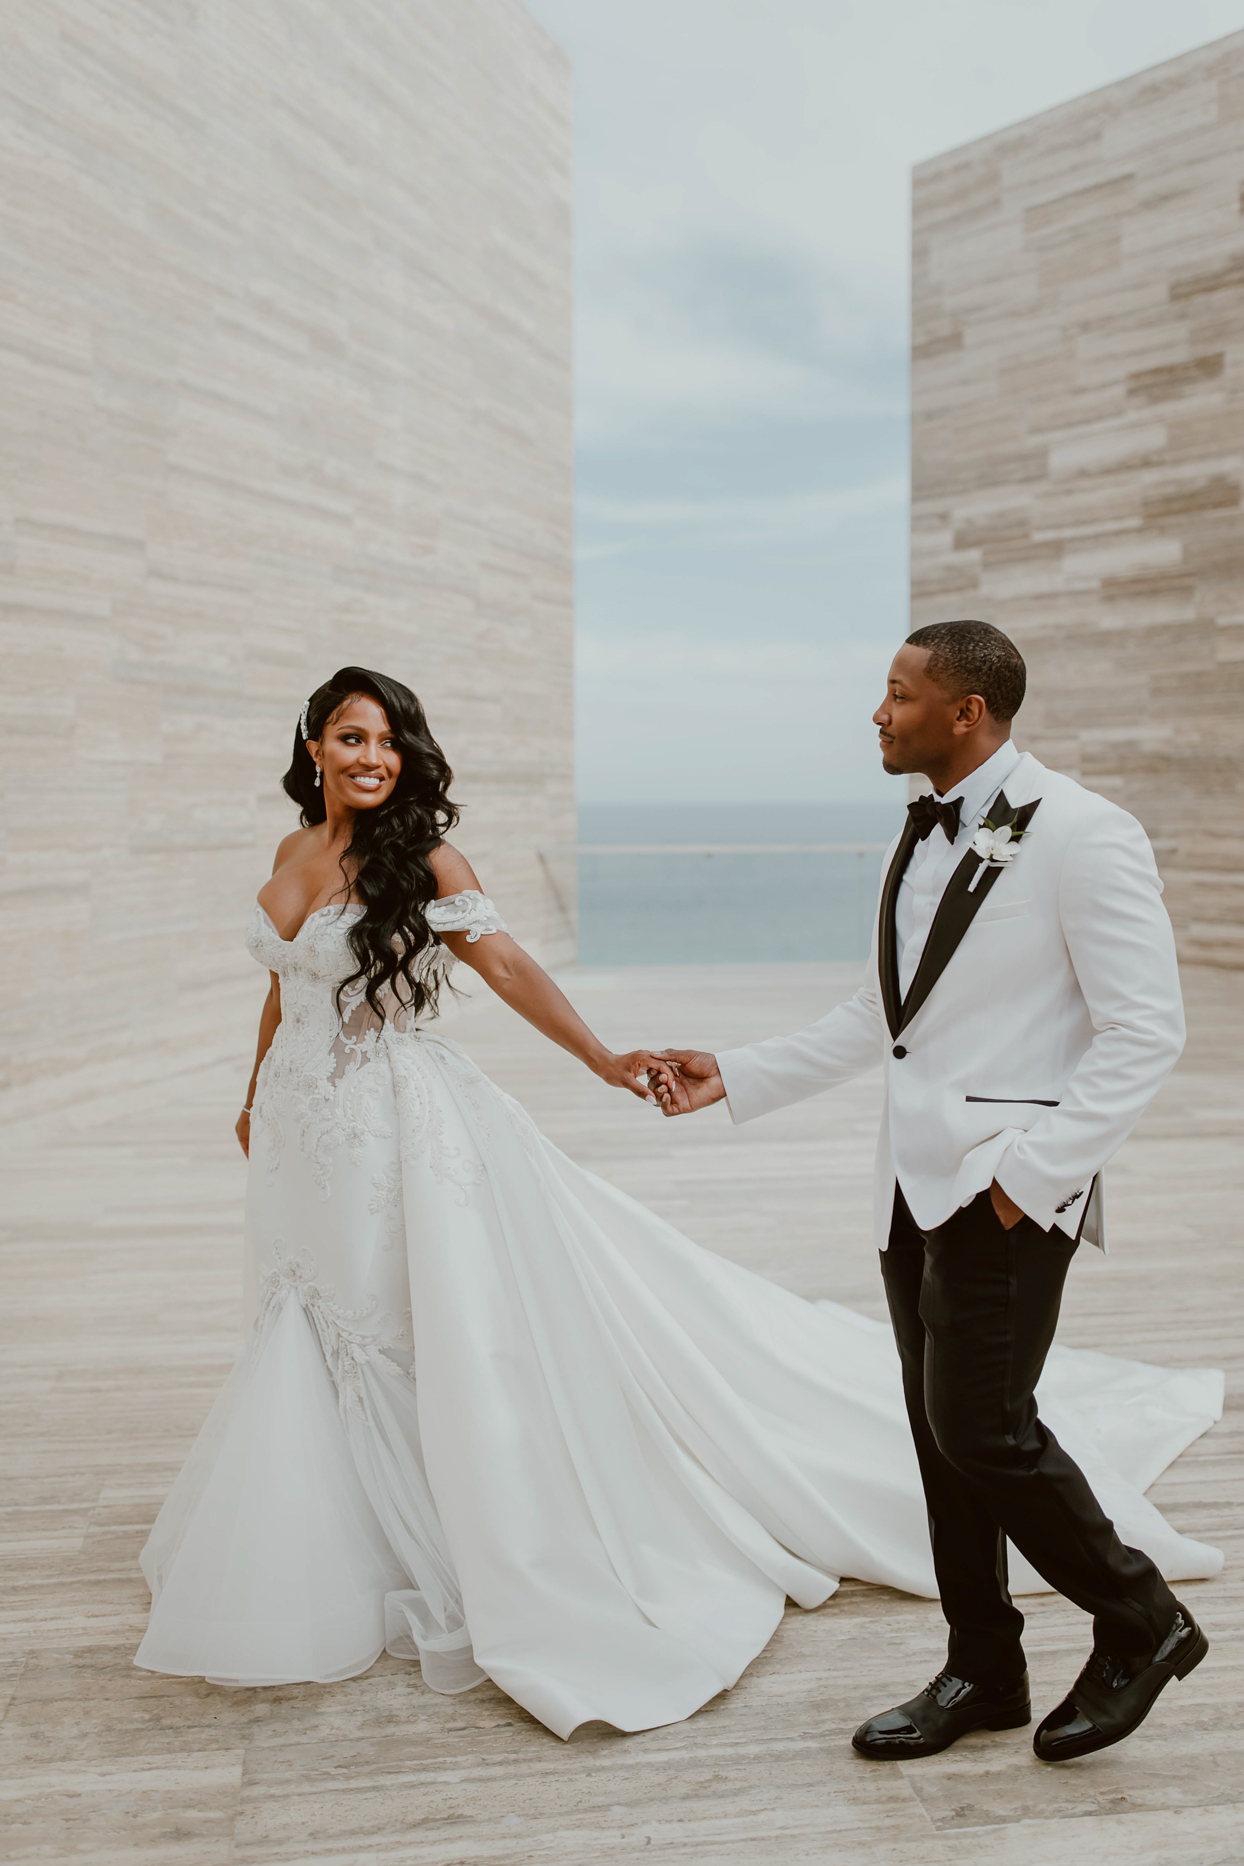 bride and groom walking together on modern structure at beach